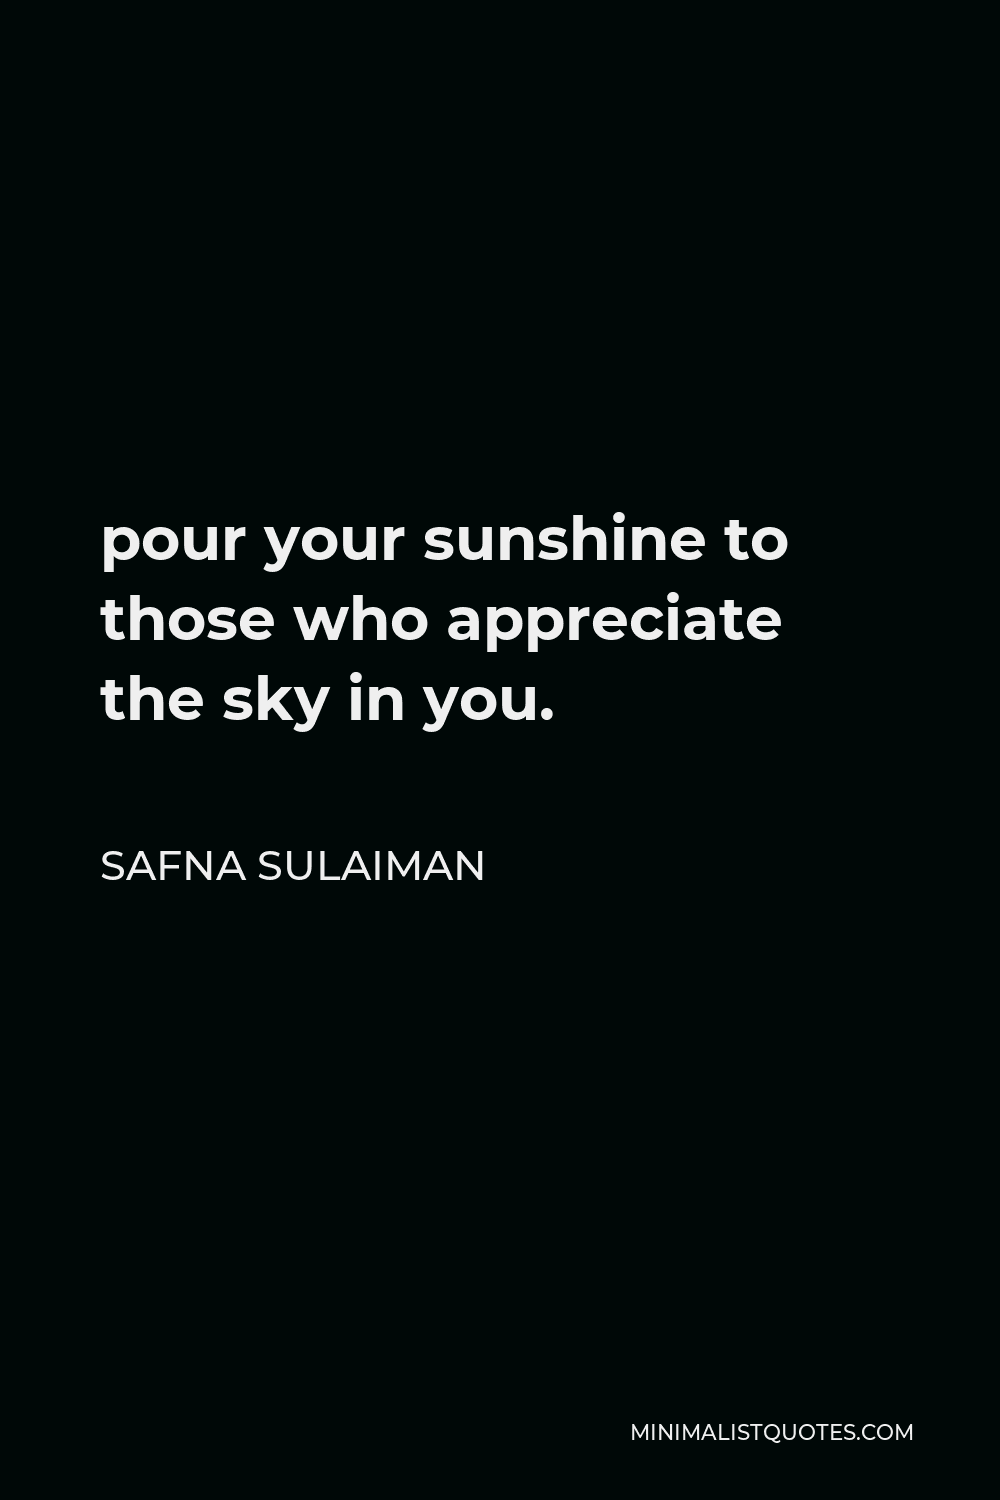 Safna Sulaiman Quote - pour your sunshine to those who appreciate the sky in you.